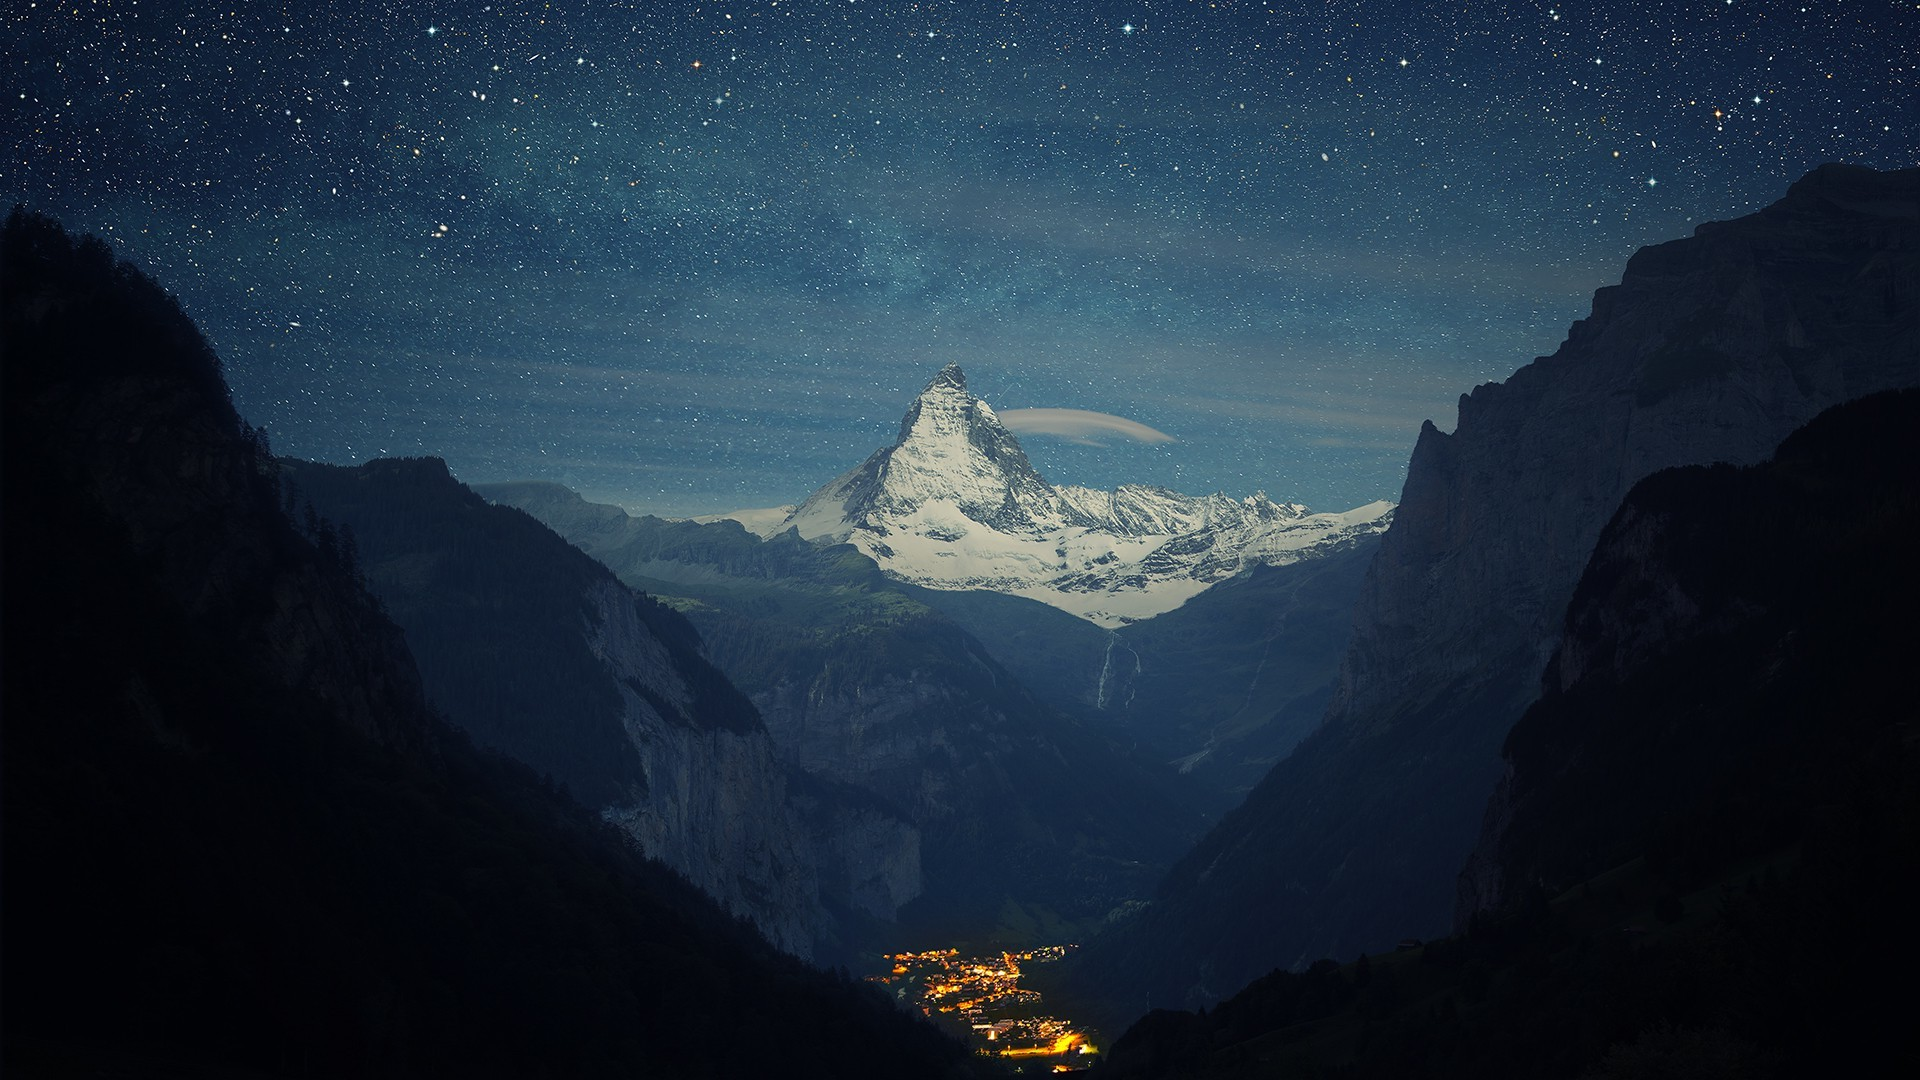 Res: 1920x1080, Mountain Night Wallpapers Hd Resolution On Wallpaper 1080p HD